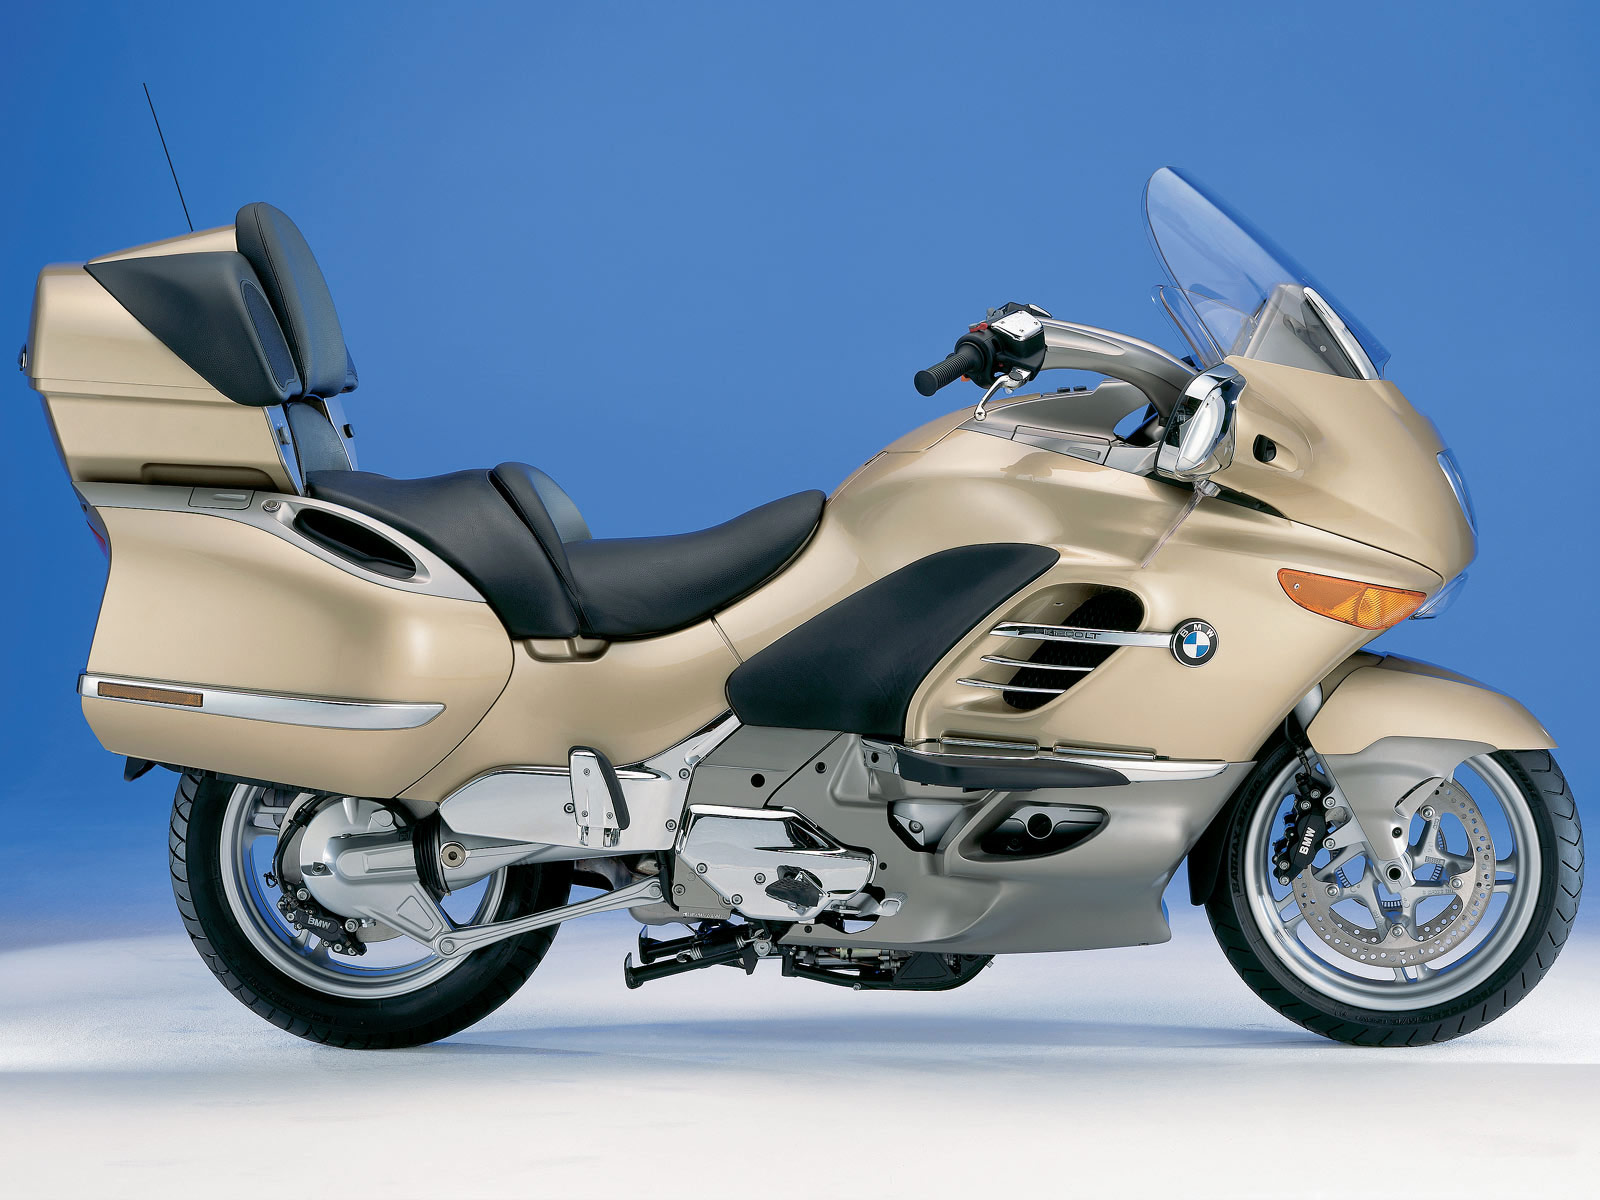 2004 BMW K1200LT motorcycle wallpaper accident lawyers info 1600x1200